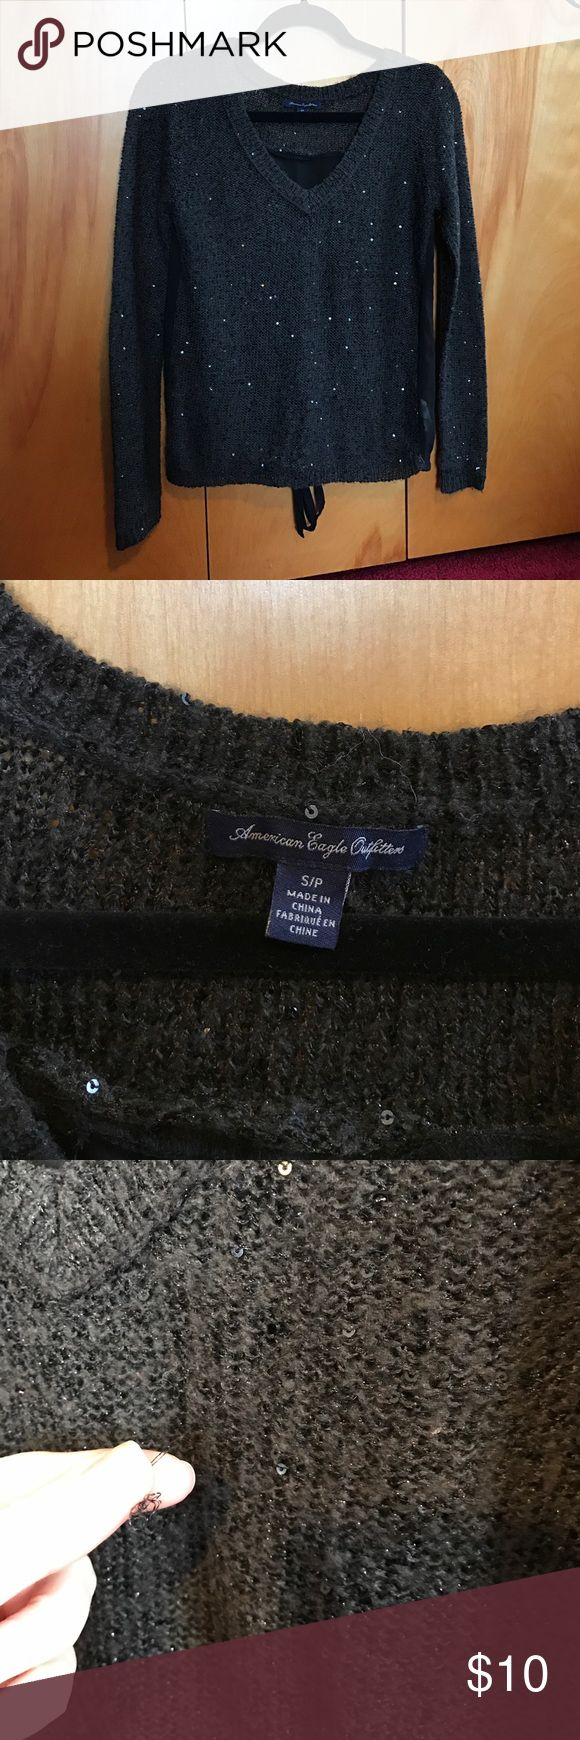 American Eagle Shimmering Sweater American Eagle sweater, size small. The sweater is dark grey and has sequins and glitter throughout the sweater that makes it shimmer and sparkle! The sweater may catch easily to jewelry so be careful. The back of the sweater is beautiful and it has sheer material that ties on the bottom as pictured. The sweater has a few pulls in it as pictured., American Eagle Outfitters Sweaters